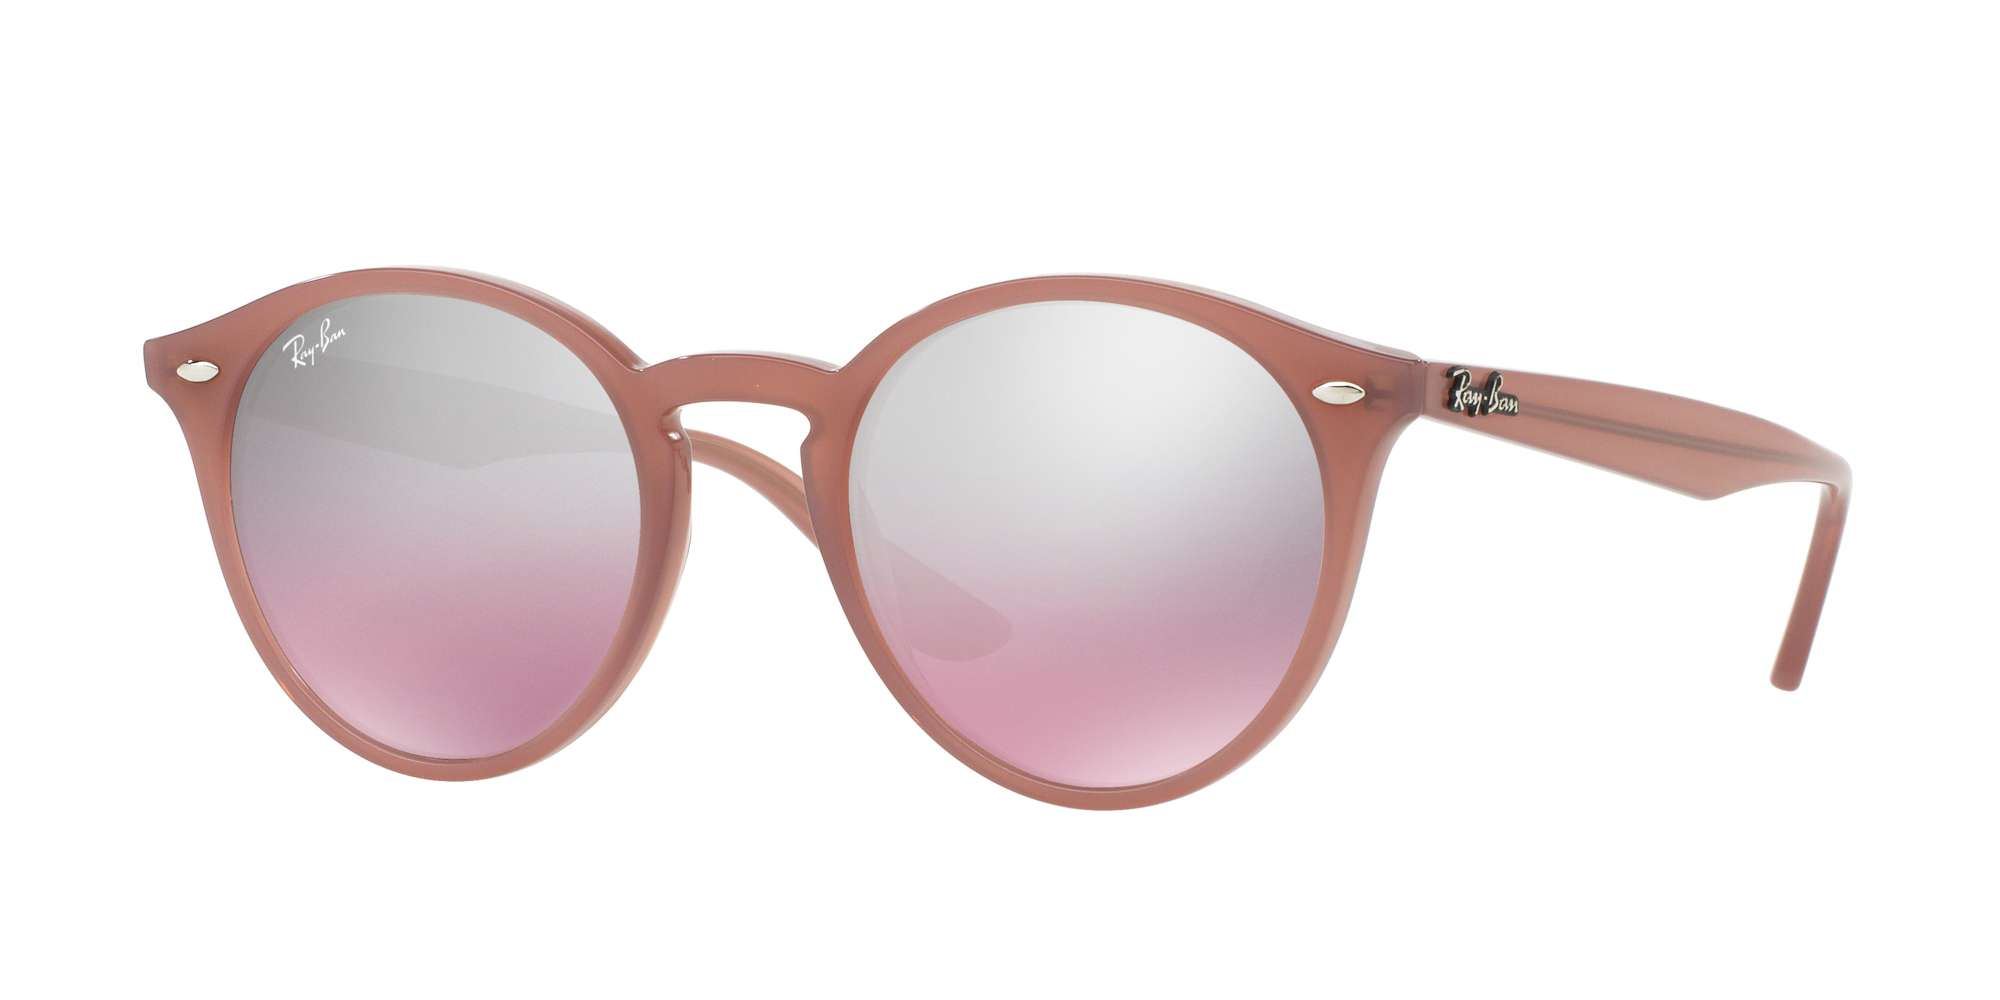 OPAL ANTIQUE PINK / PINK MIRROR SILVER GRAD lenses